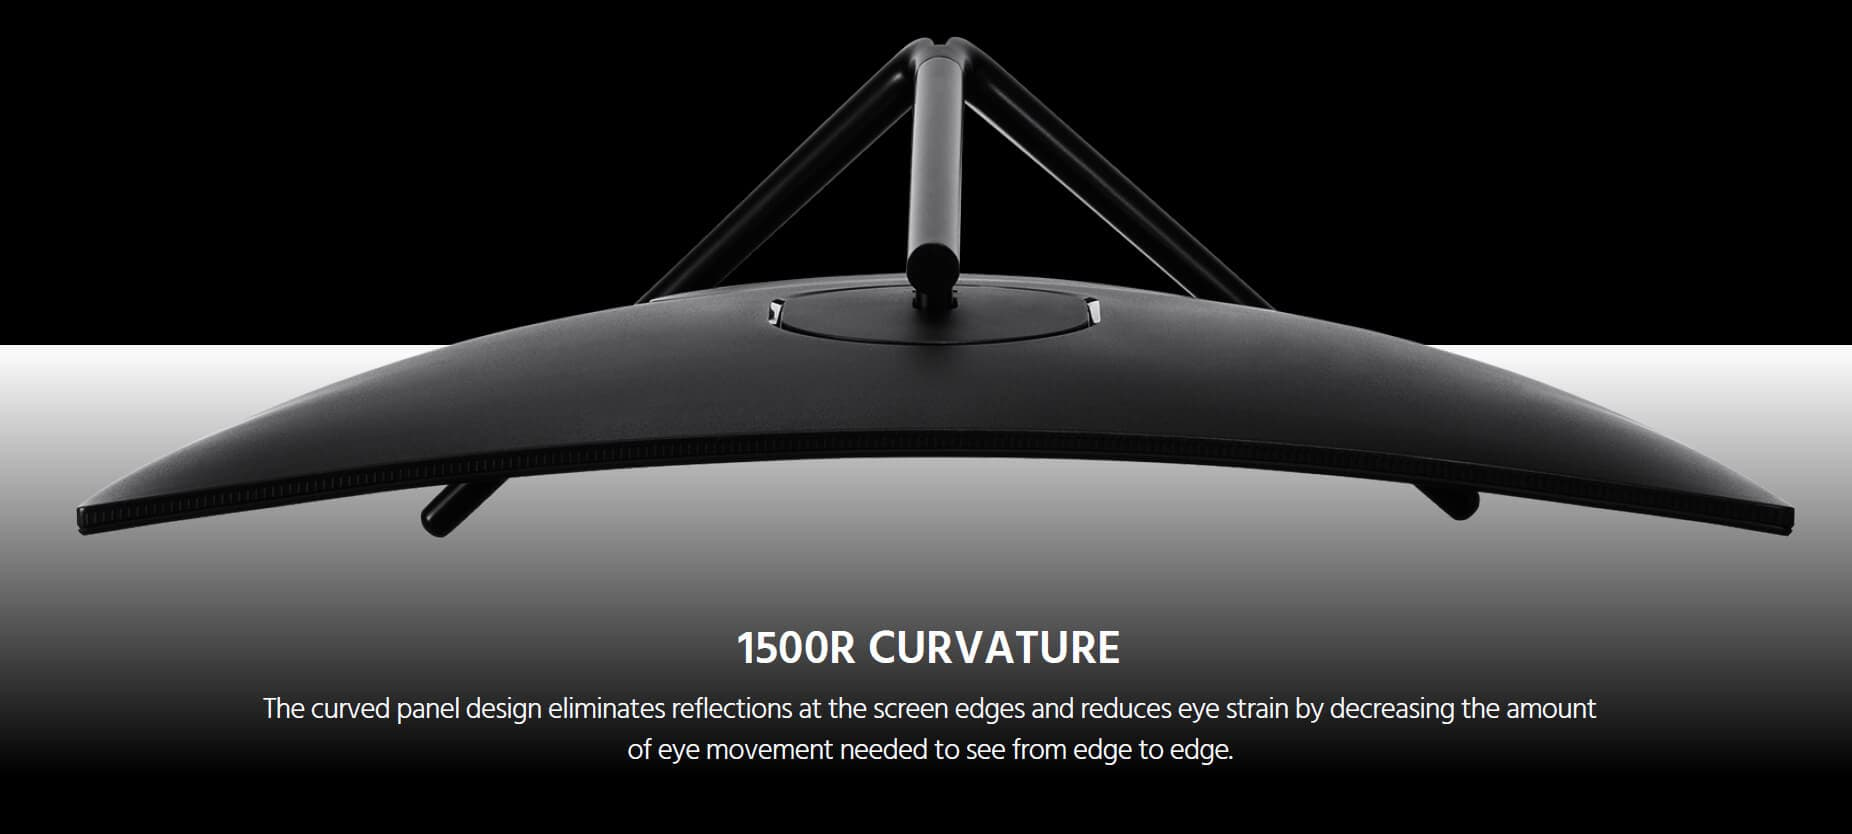 1500R CURVATURE. The curved panel design eliminates reflections at the screen edges and reduces eye strain by decreasing the amount of eye movement needed to see from edge to edge.